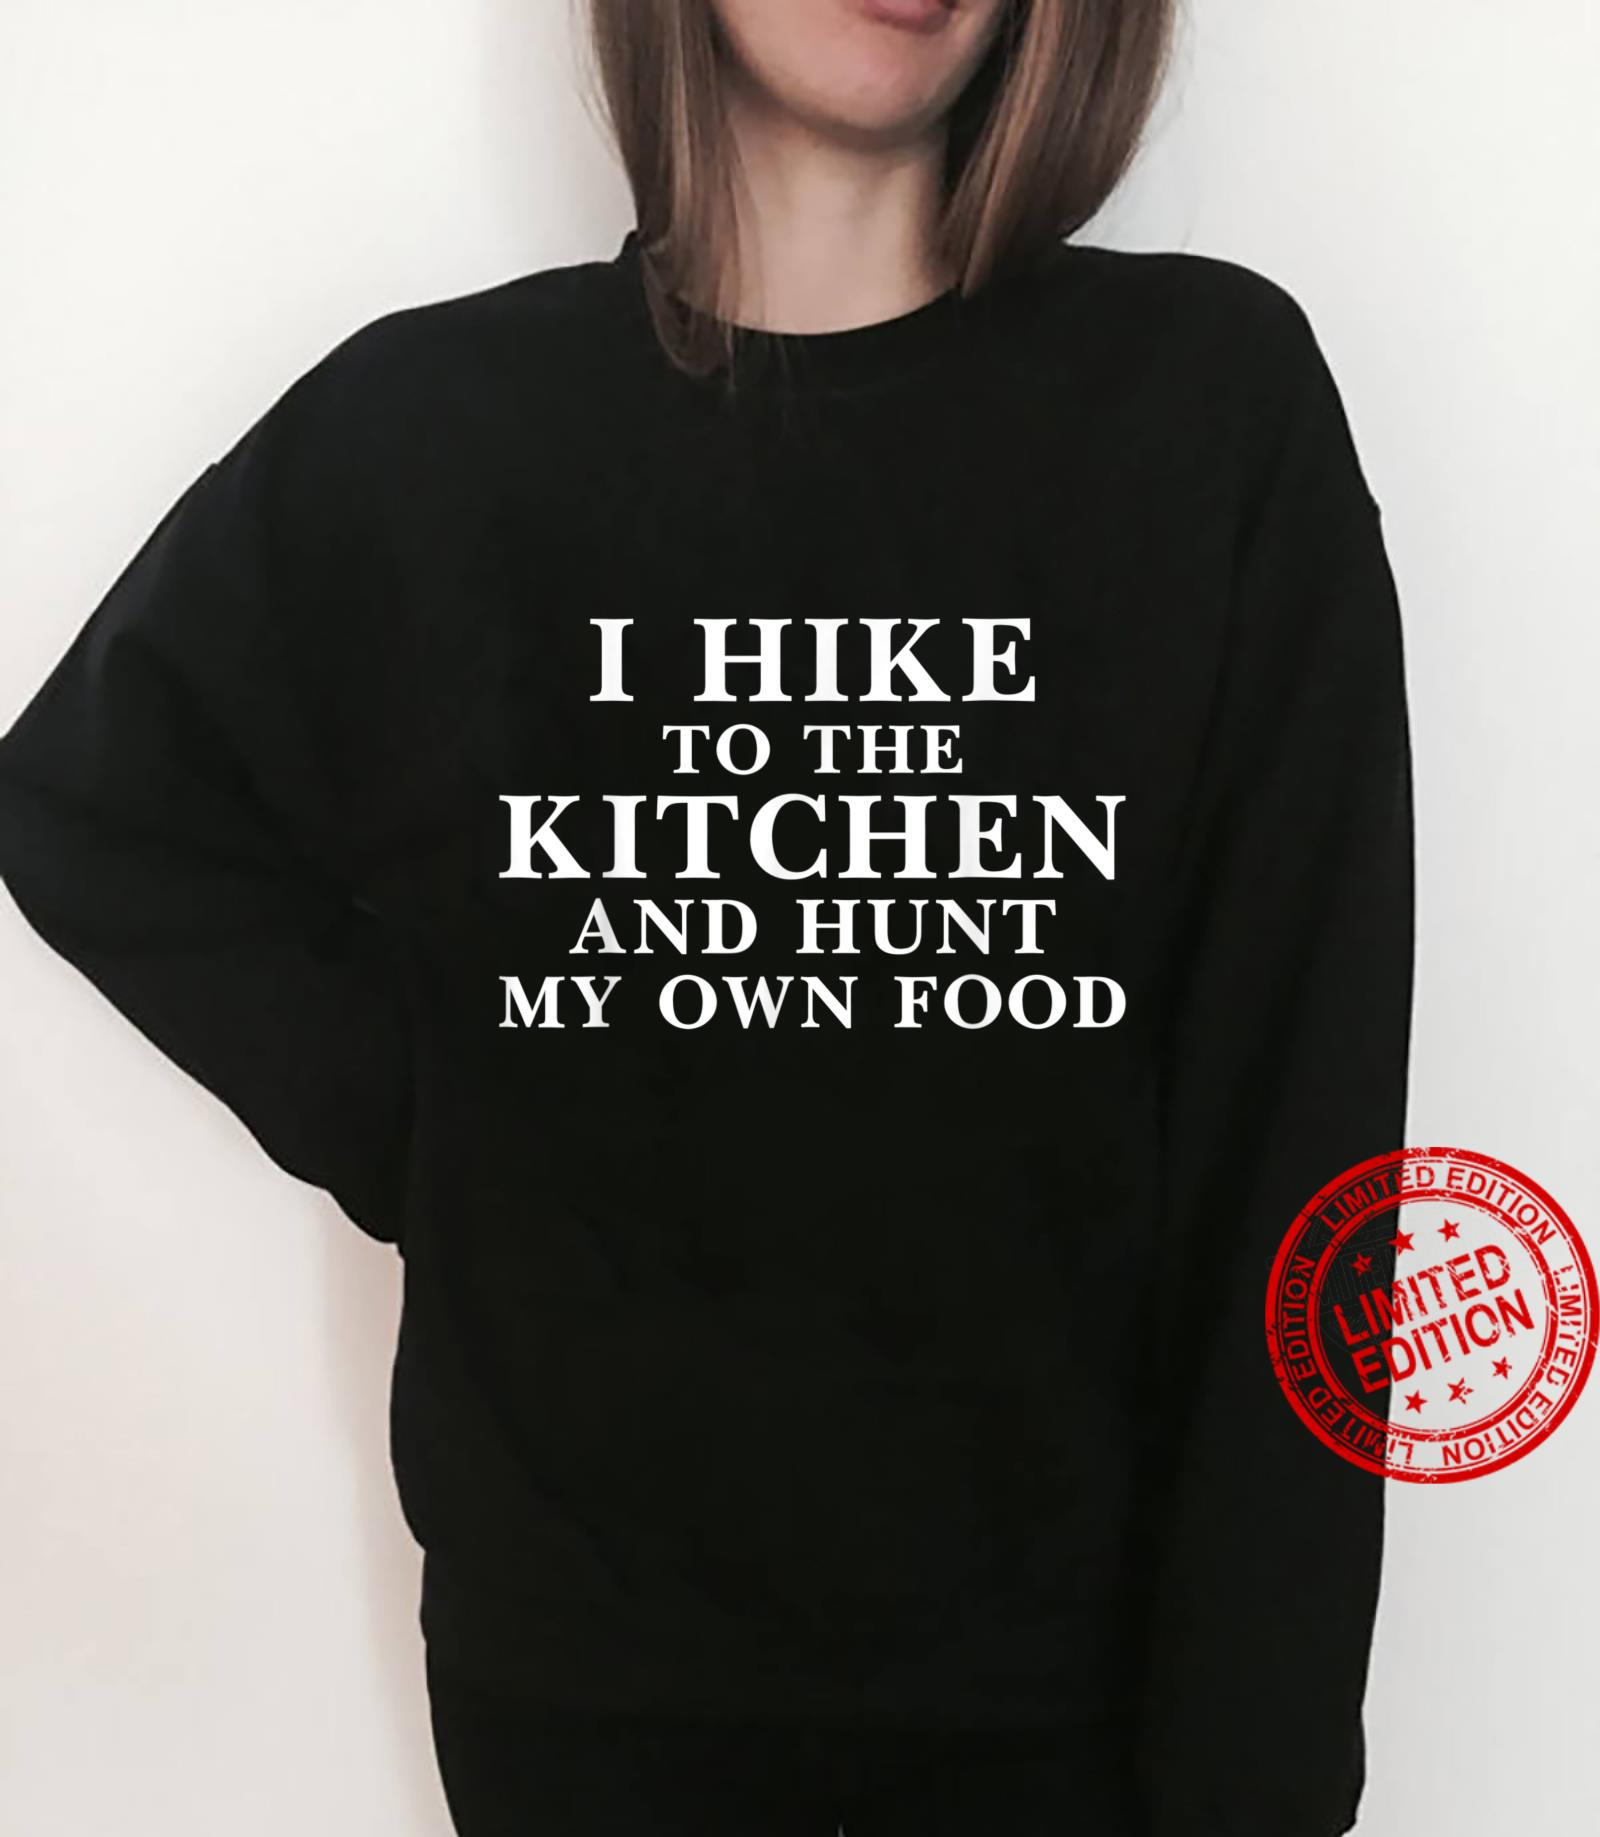 Funny Saying I Hike to the Kitchen and Hunt my own Food Shirt sweater